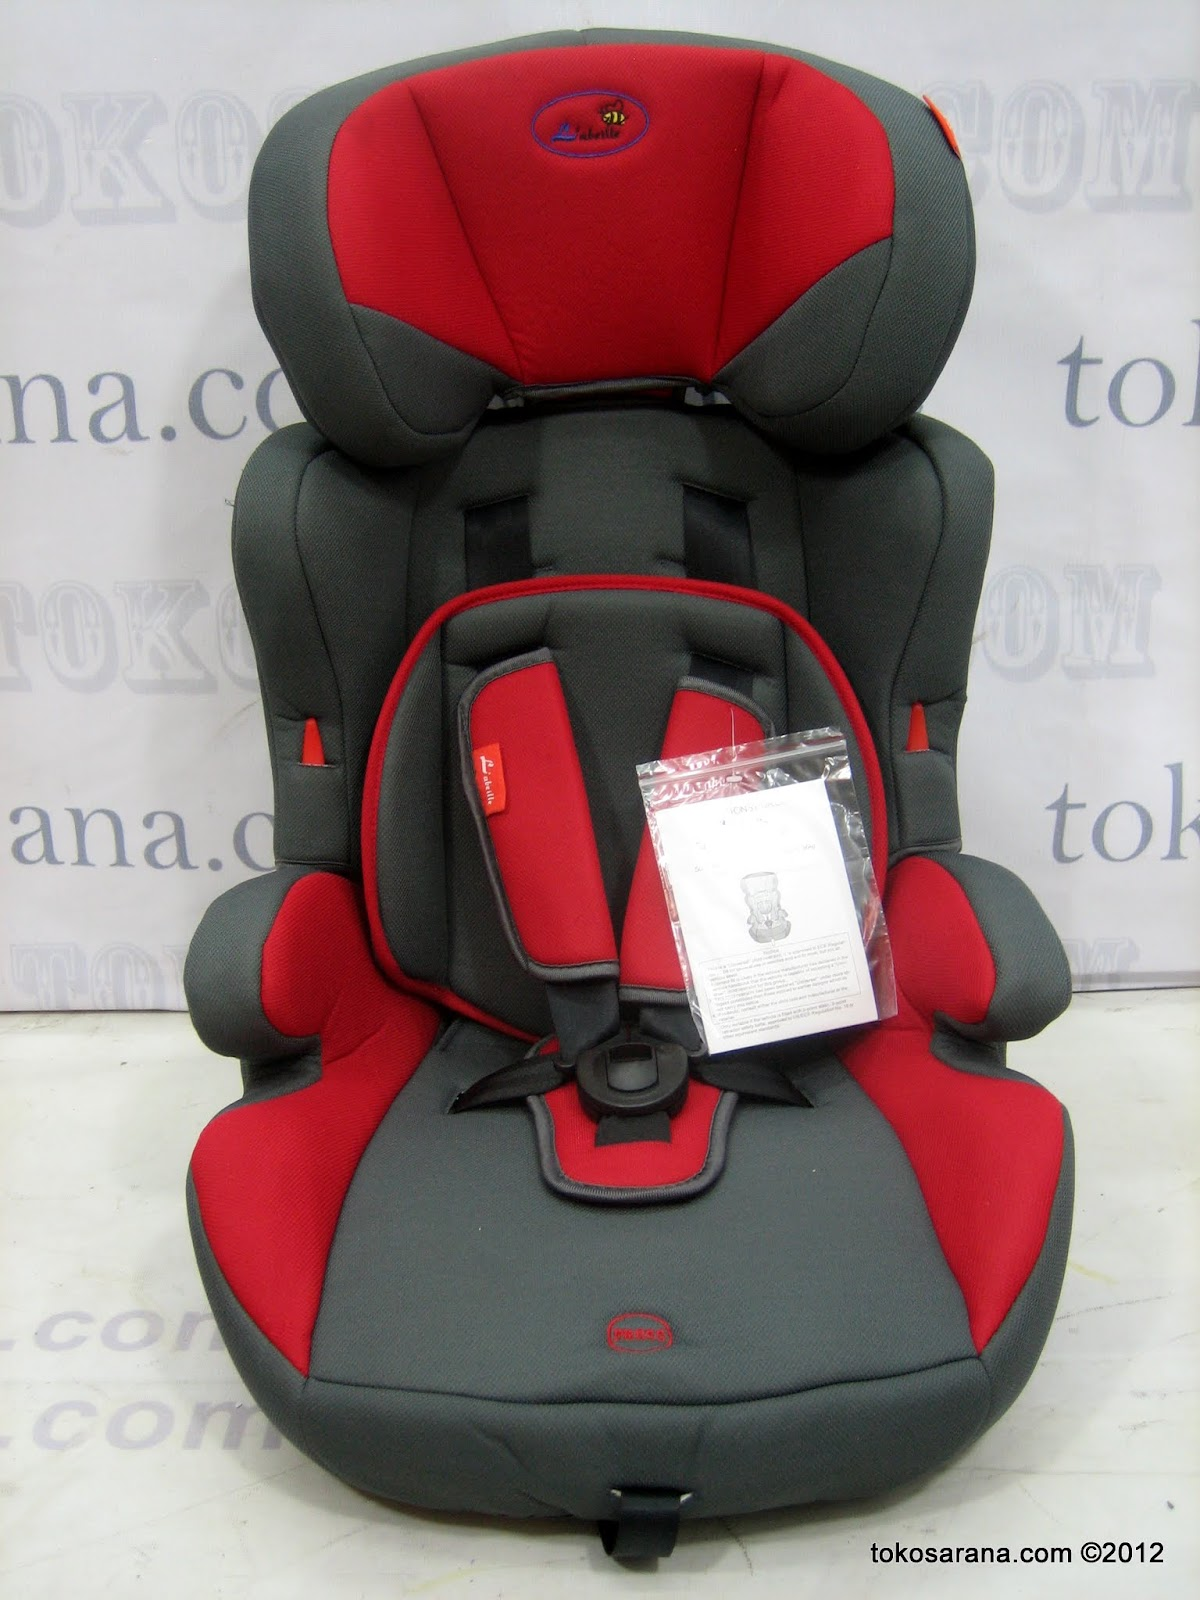 clearance sale sepeda mainan anak dan perlengkapan bayi combination car seat junior l 39 abeille. Black Bedroom Furniture Sets. Home Design Ideas